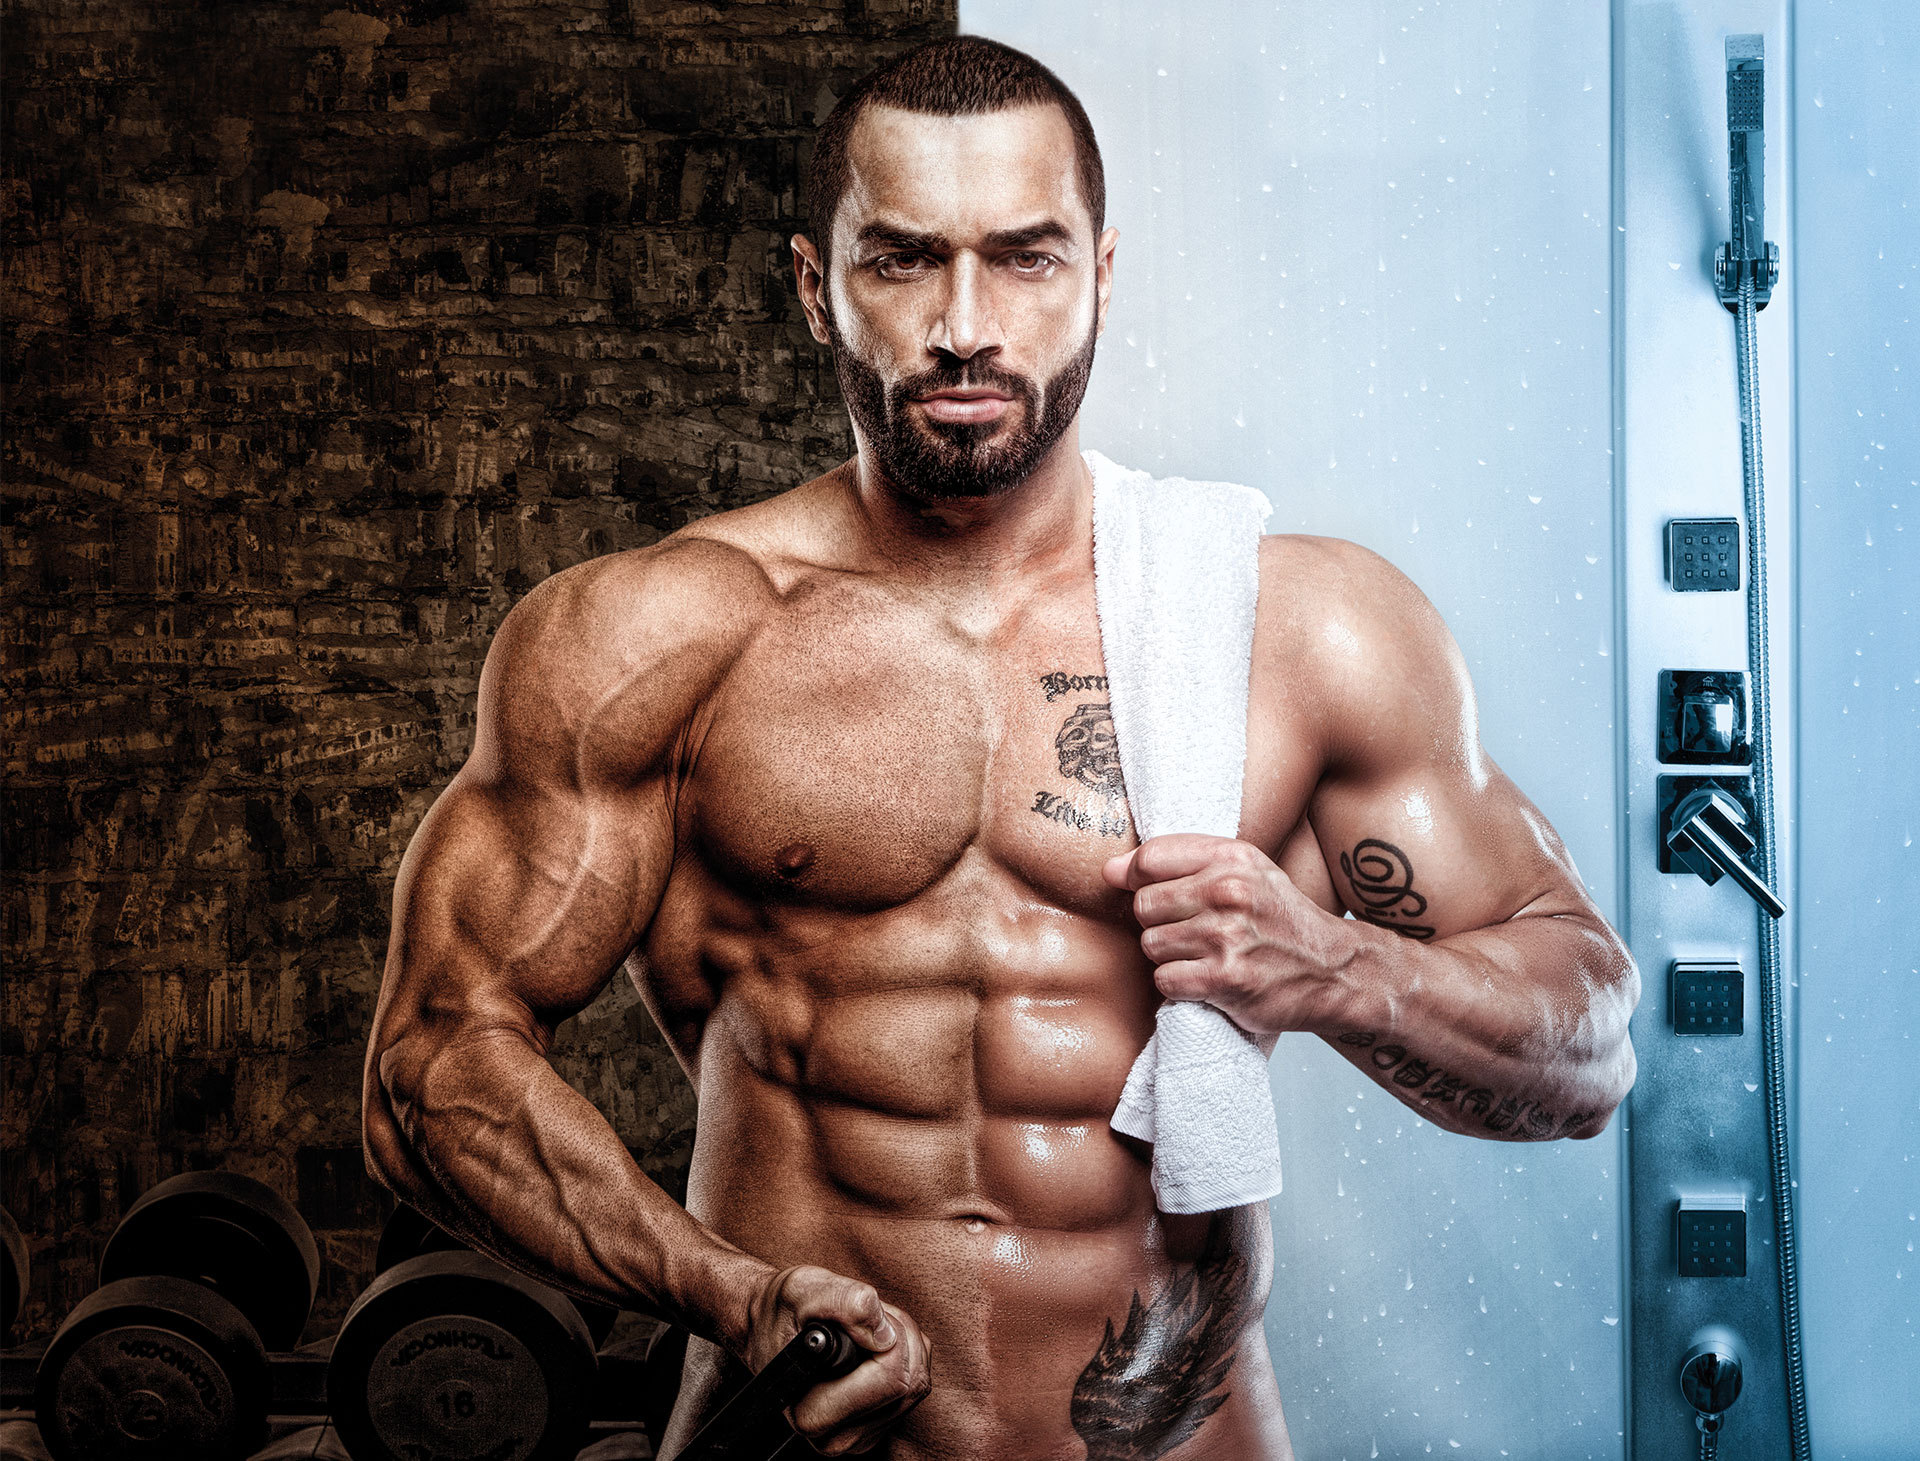 Lazar Angelov Wallpapers & Bio